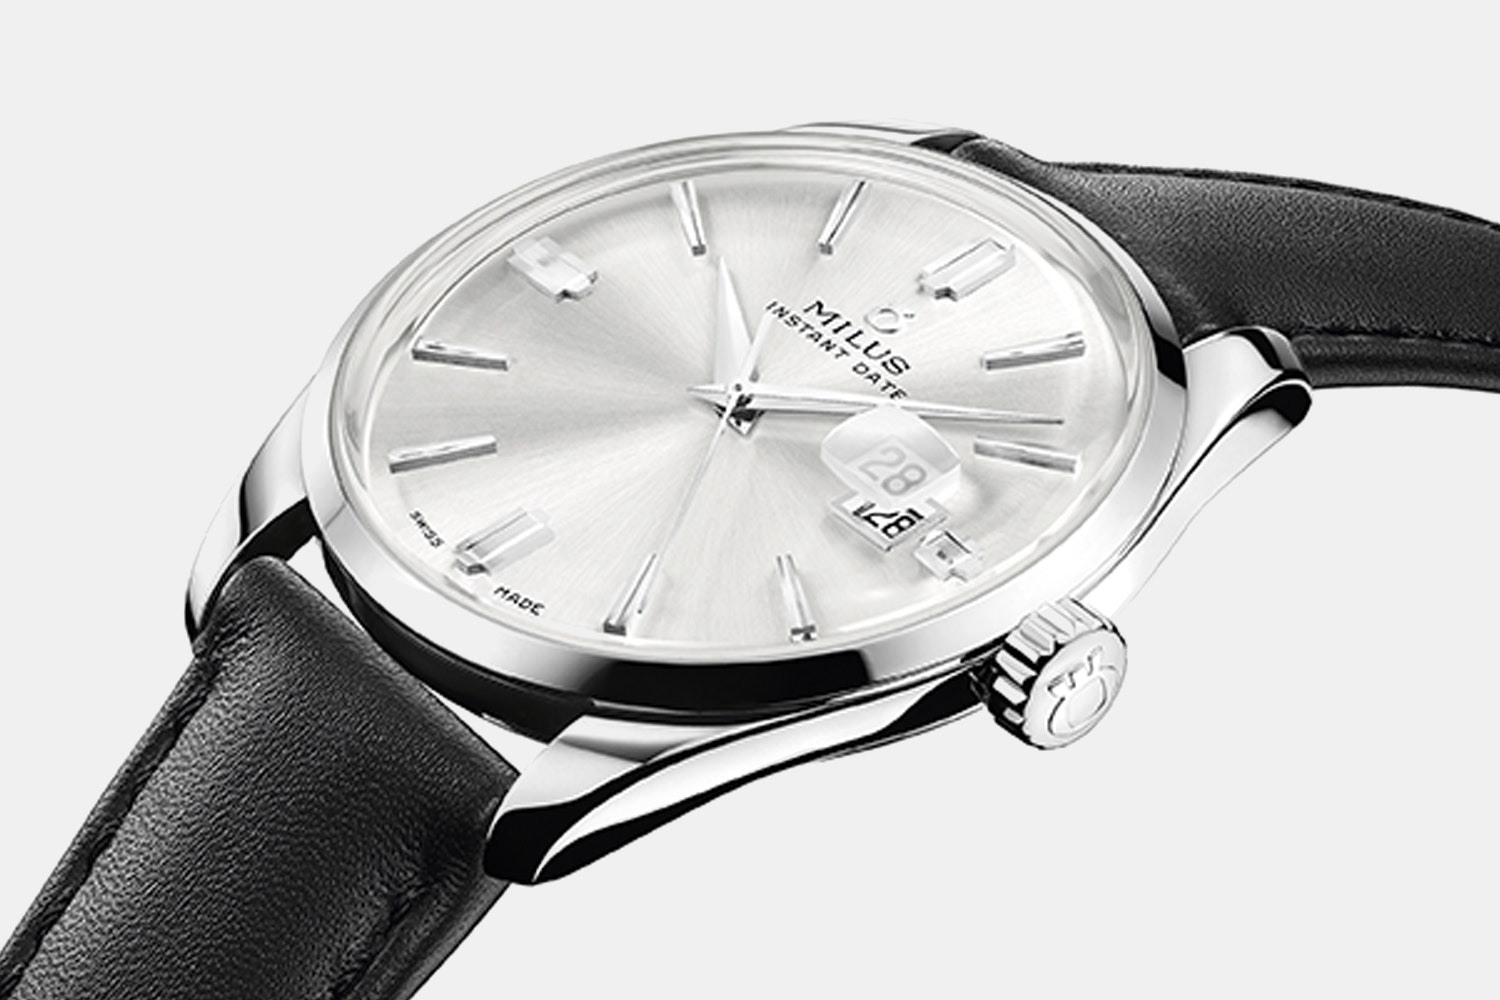 Milus Snow Star Heritage Automatic Watch Set